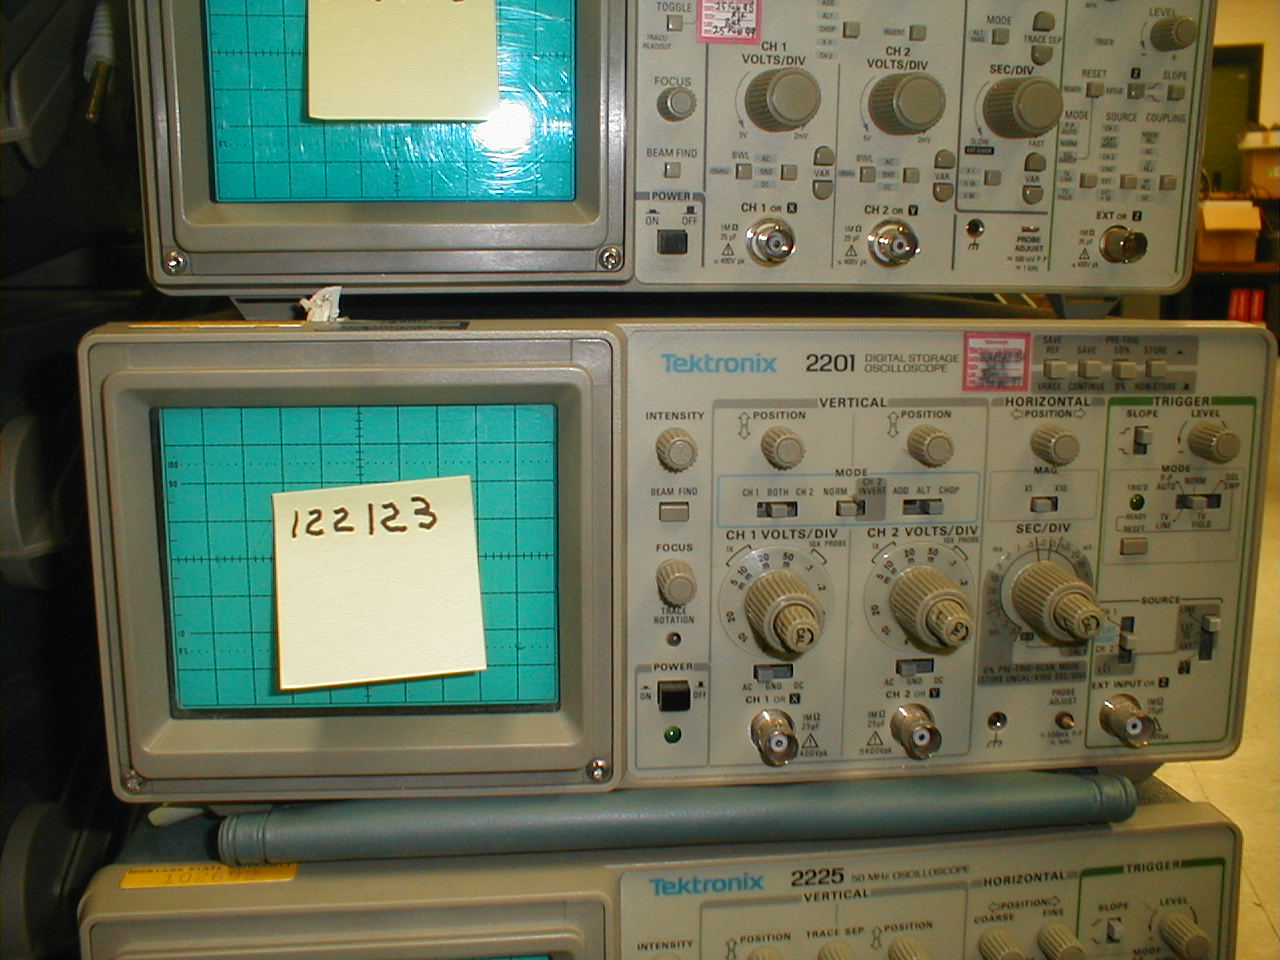 Front view of Tektronix 2201 oscilloscope